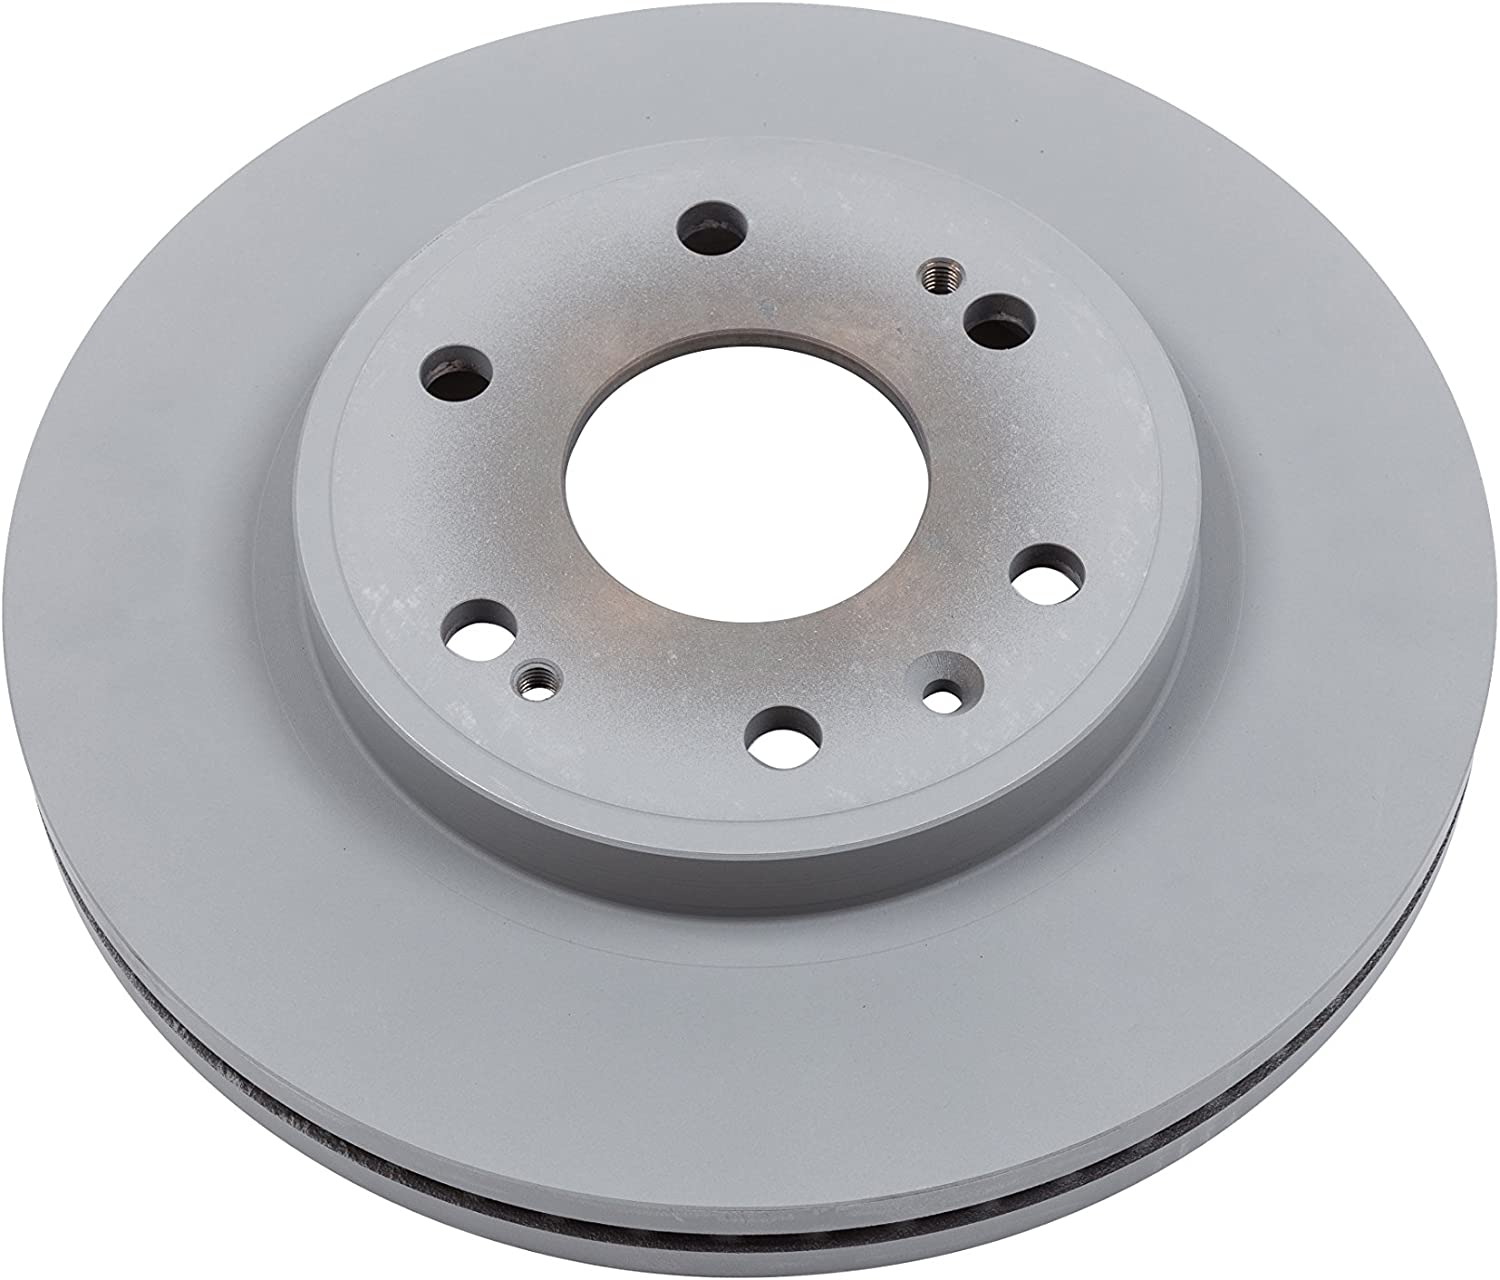 Rotors Metallic Pads F OE Replacement 1997 1998 Chevy C1500 w//5 Stud Whls